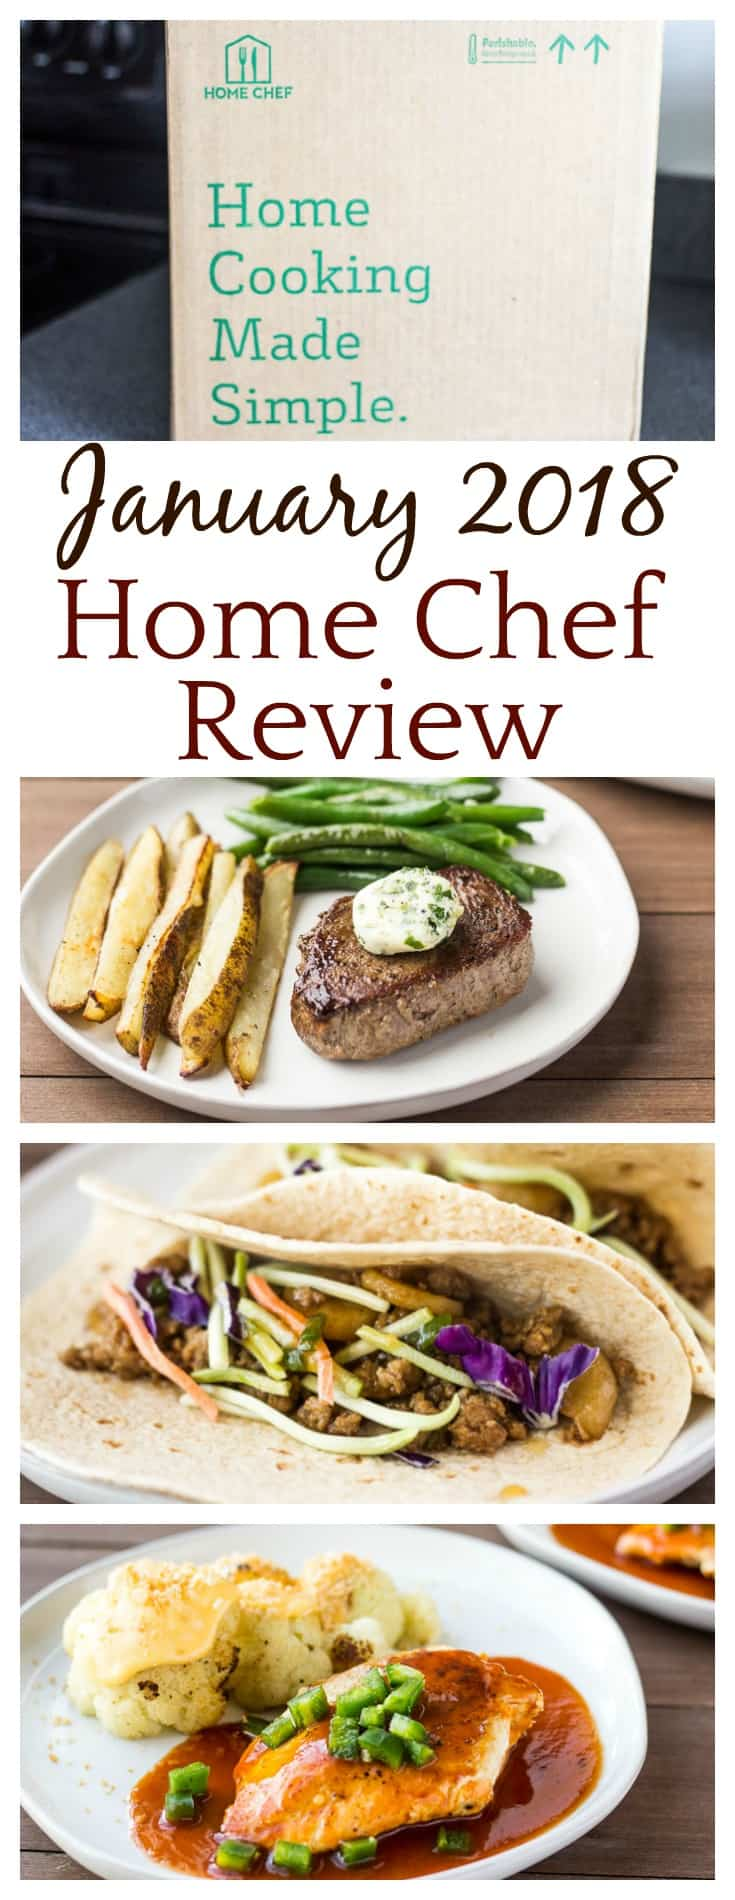 Check out the three meals and smoothie recipe I received in this January 2018 Home Chef Review! Included is also a coupon for $30 off of your first order! | #homechef #mealkits #mealkitreviews #foodsubscriptionboxes #subscriptionboxes #foodie